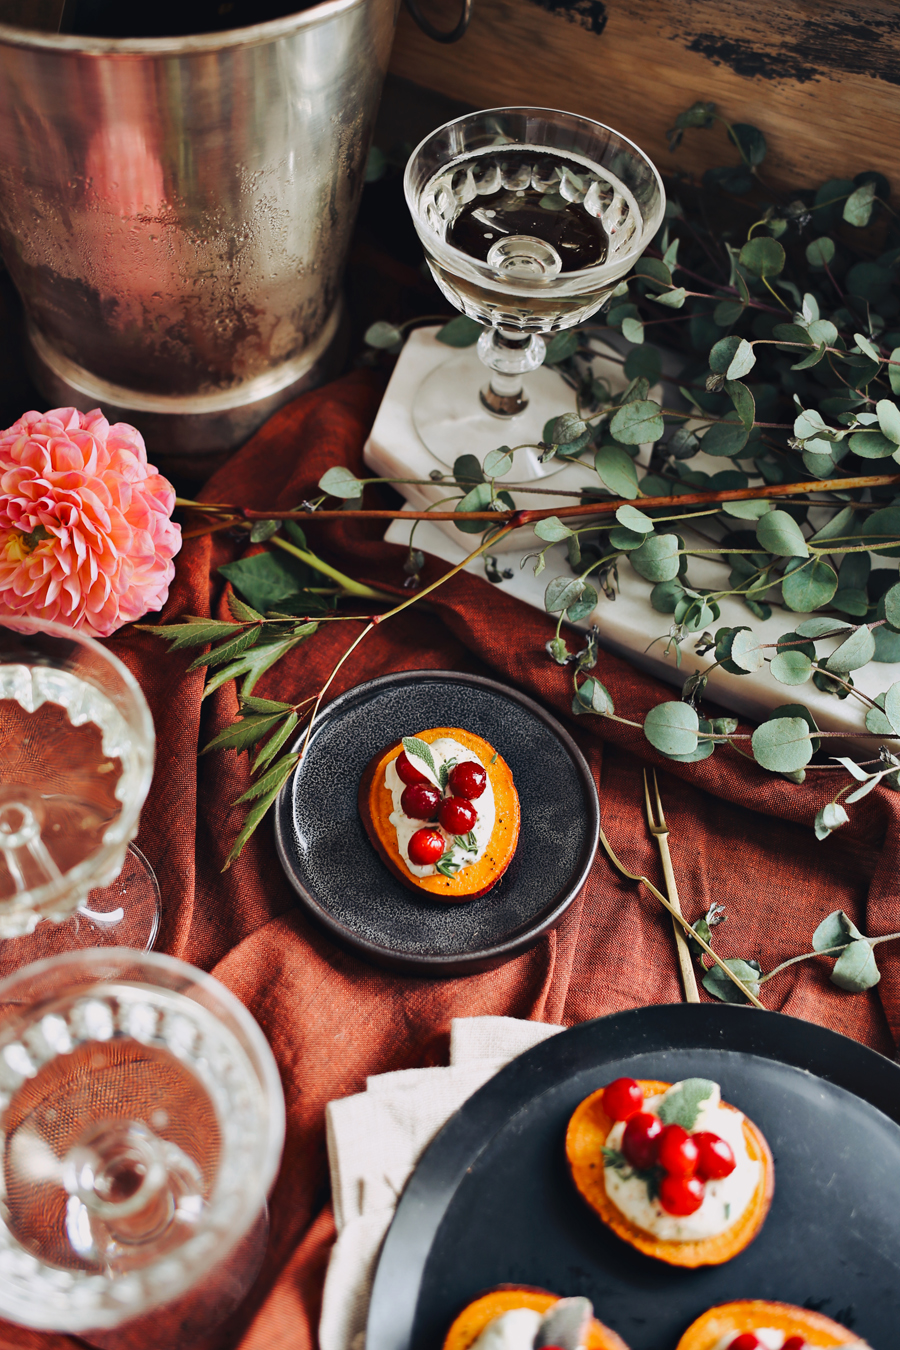 06_Herbed-Yam-Canapes-With-Pickled-Cranberry-Dine-X-Design-copy.jpg